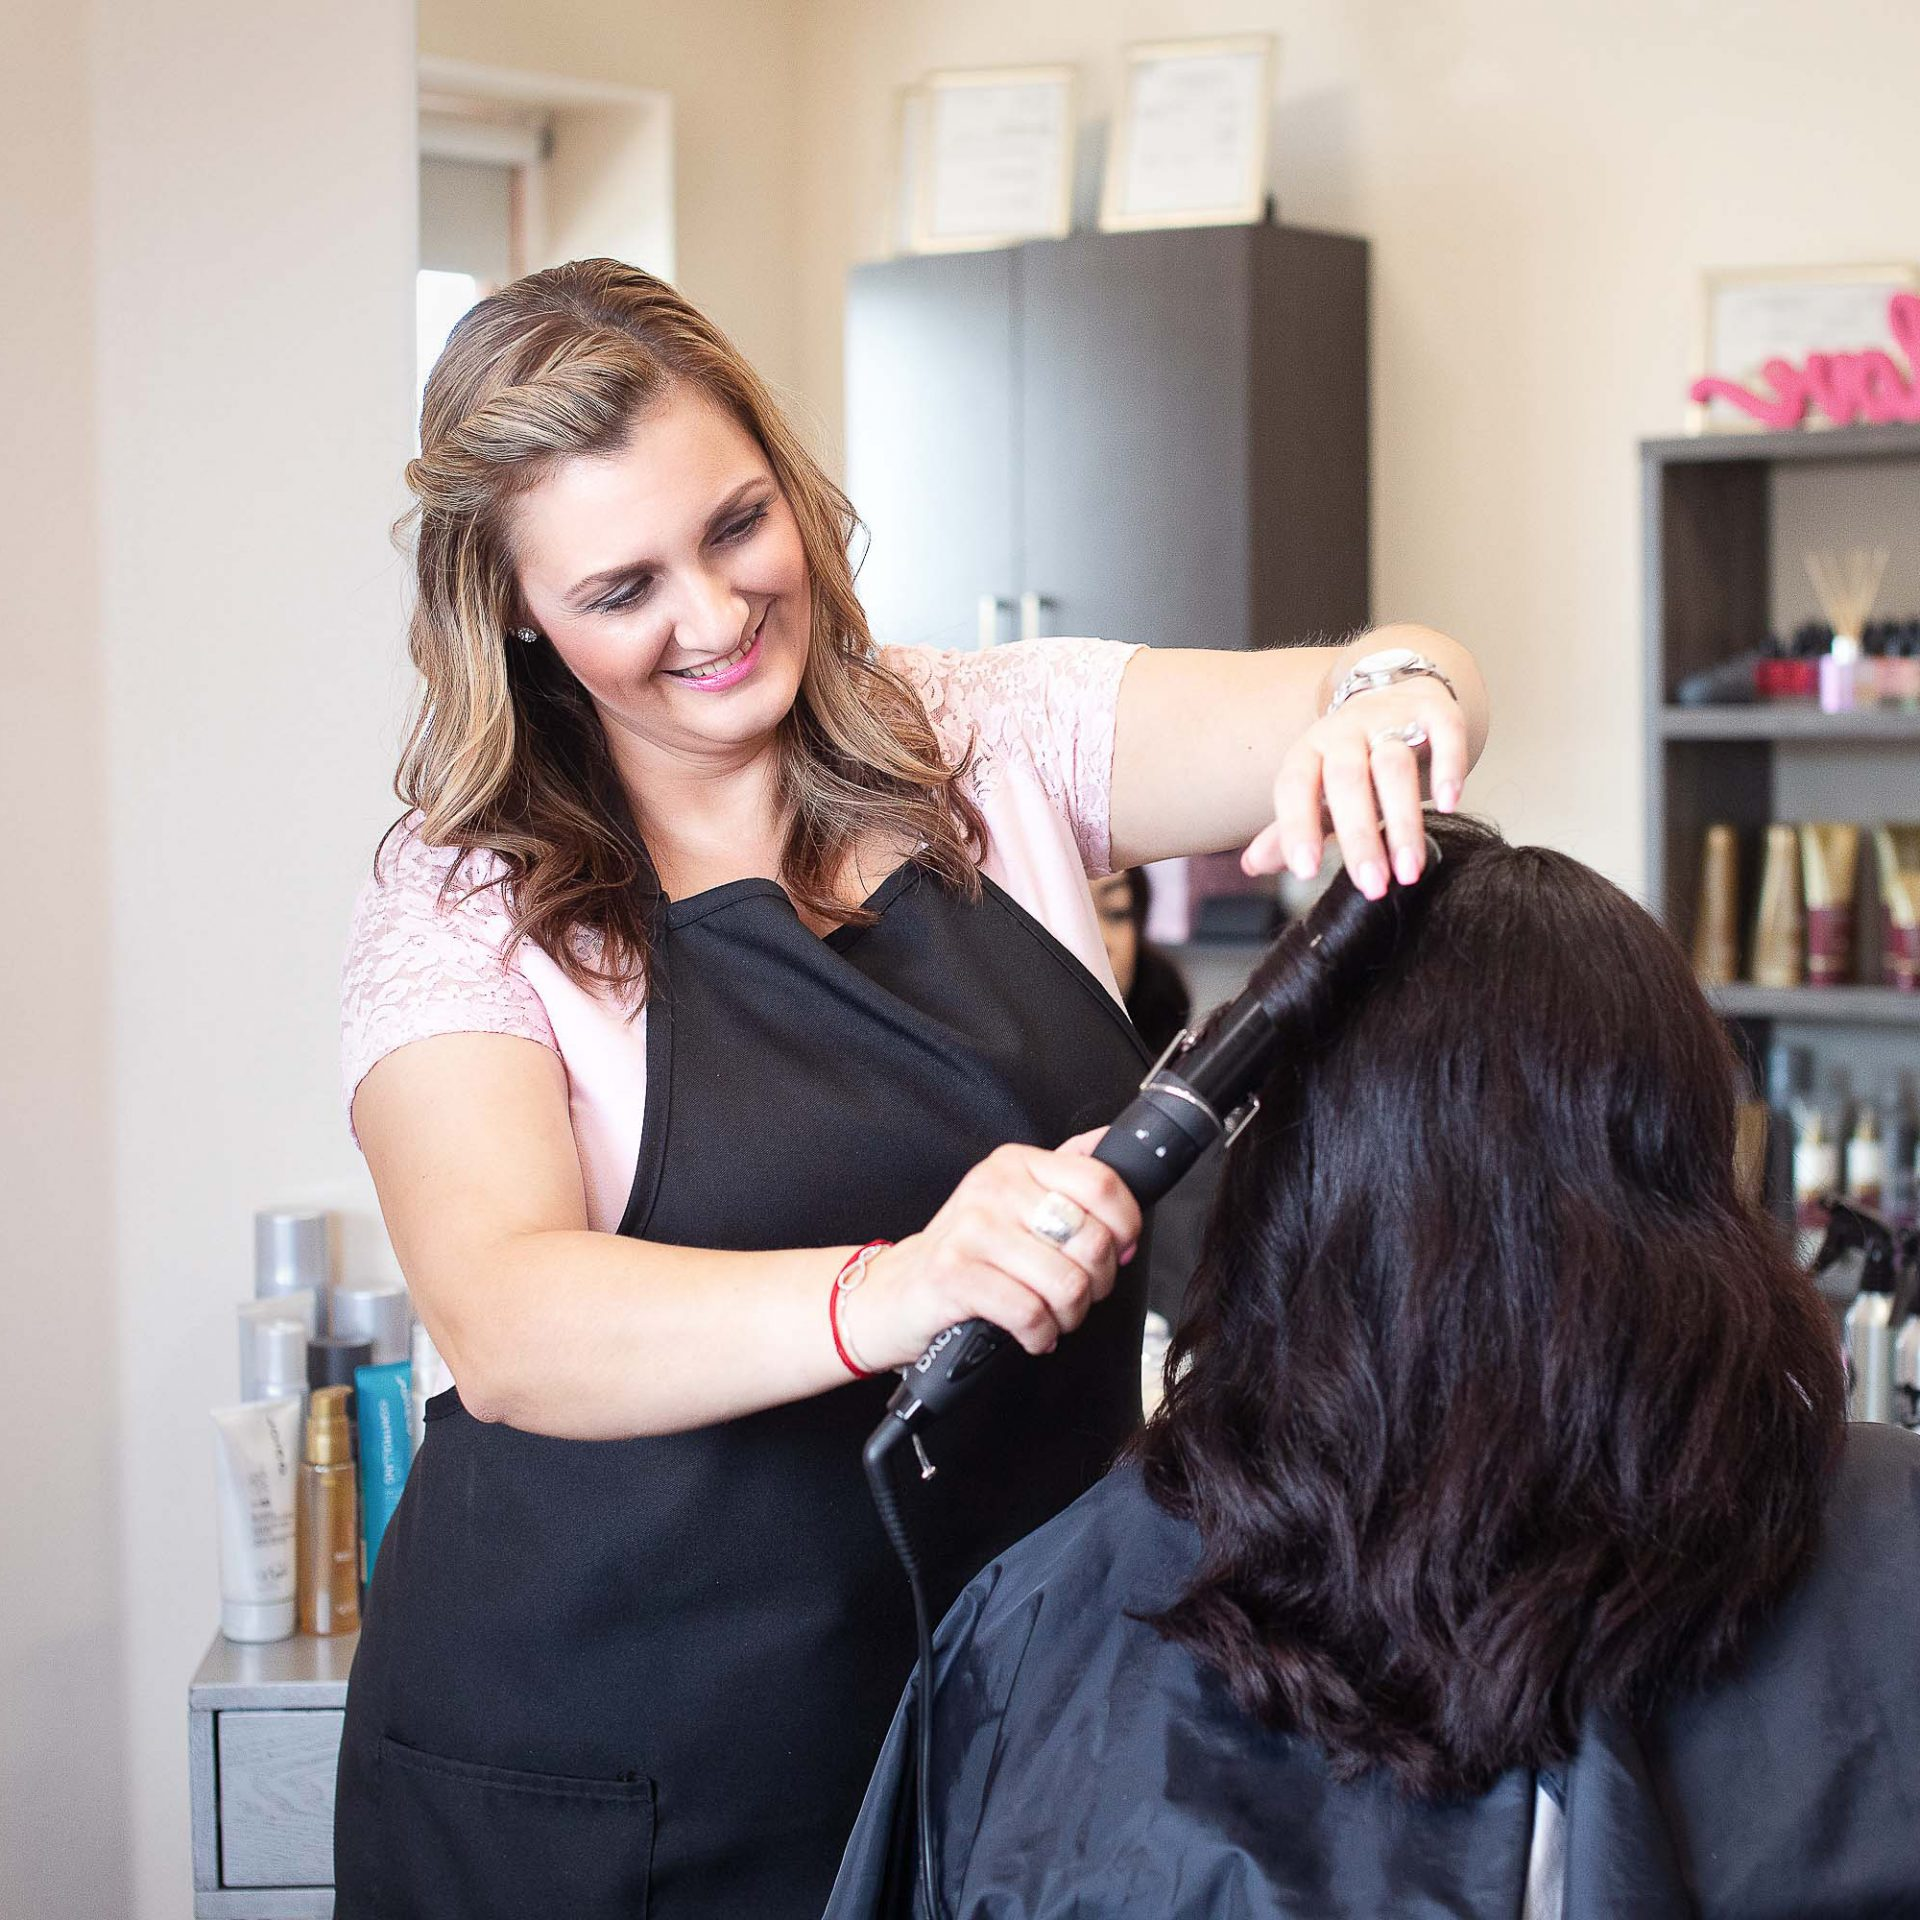 Salon Stylist Personal Brand Photography